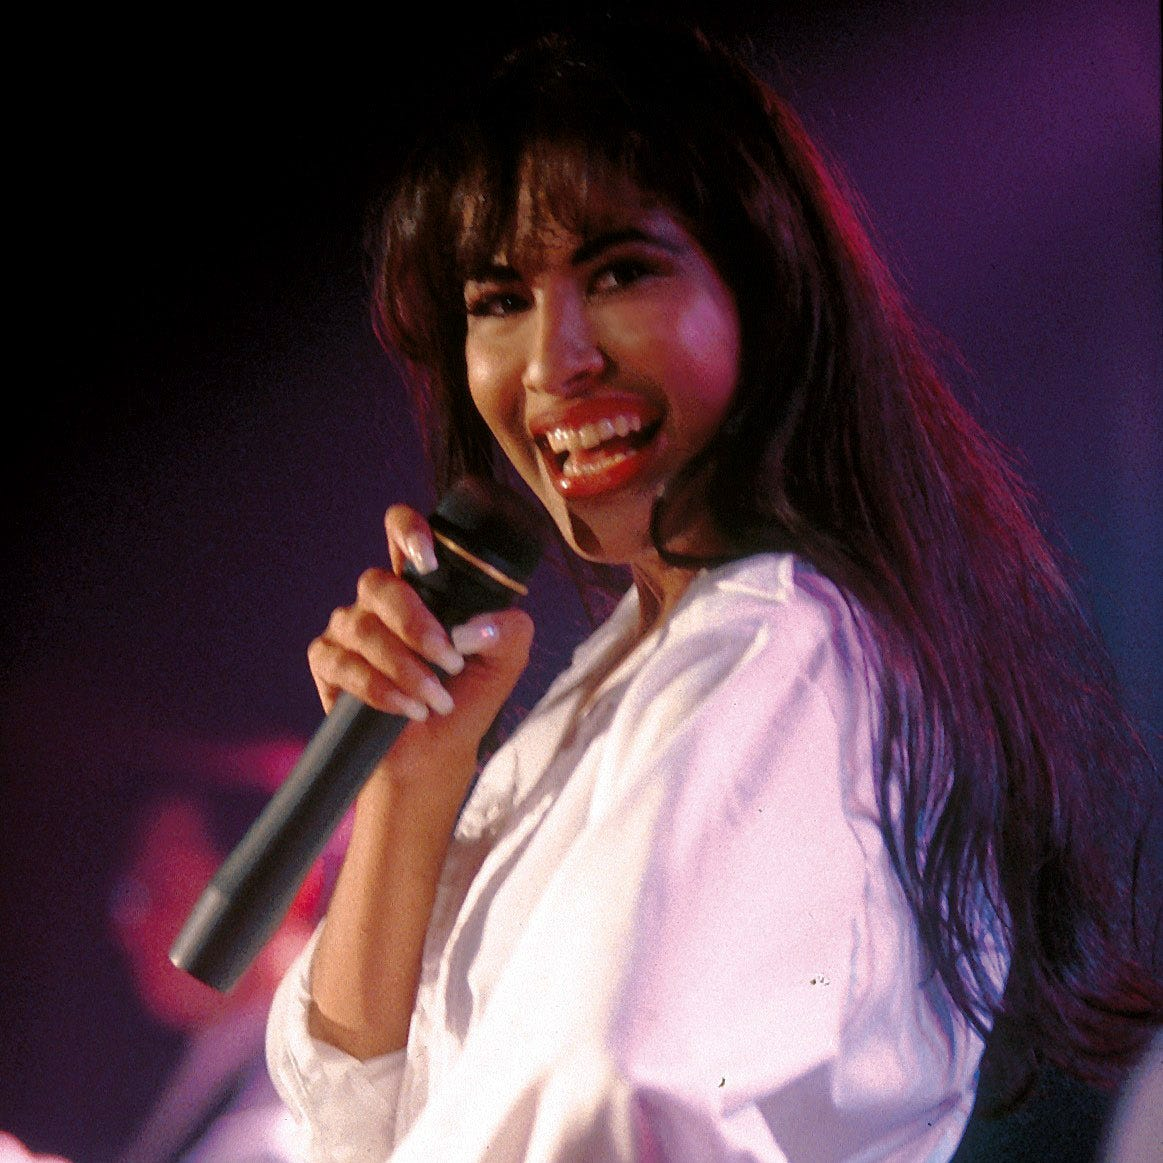 Selena fans in Las Cruces remember late Tejano singer ahead of tribute concert April 26